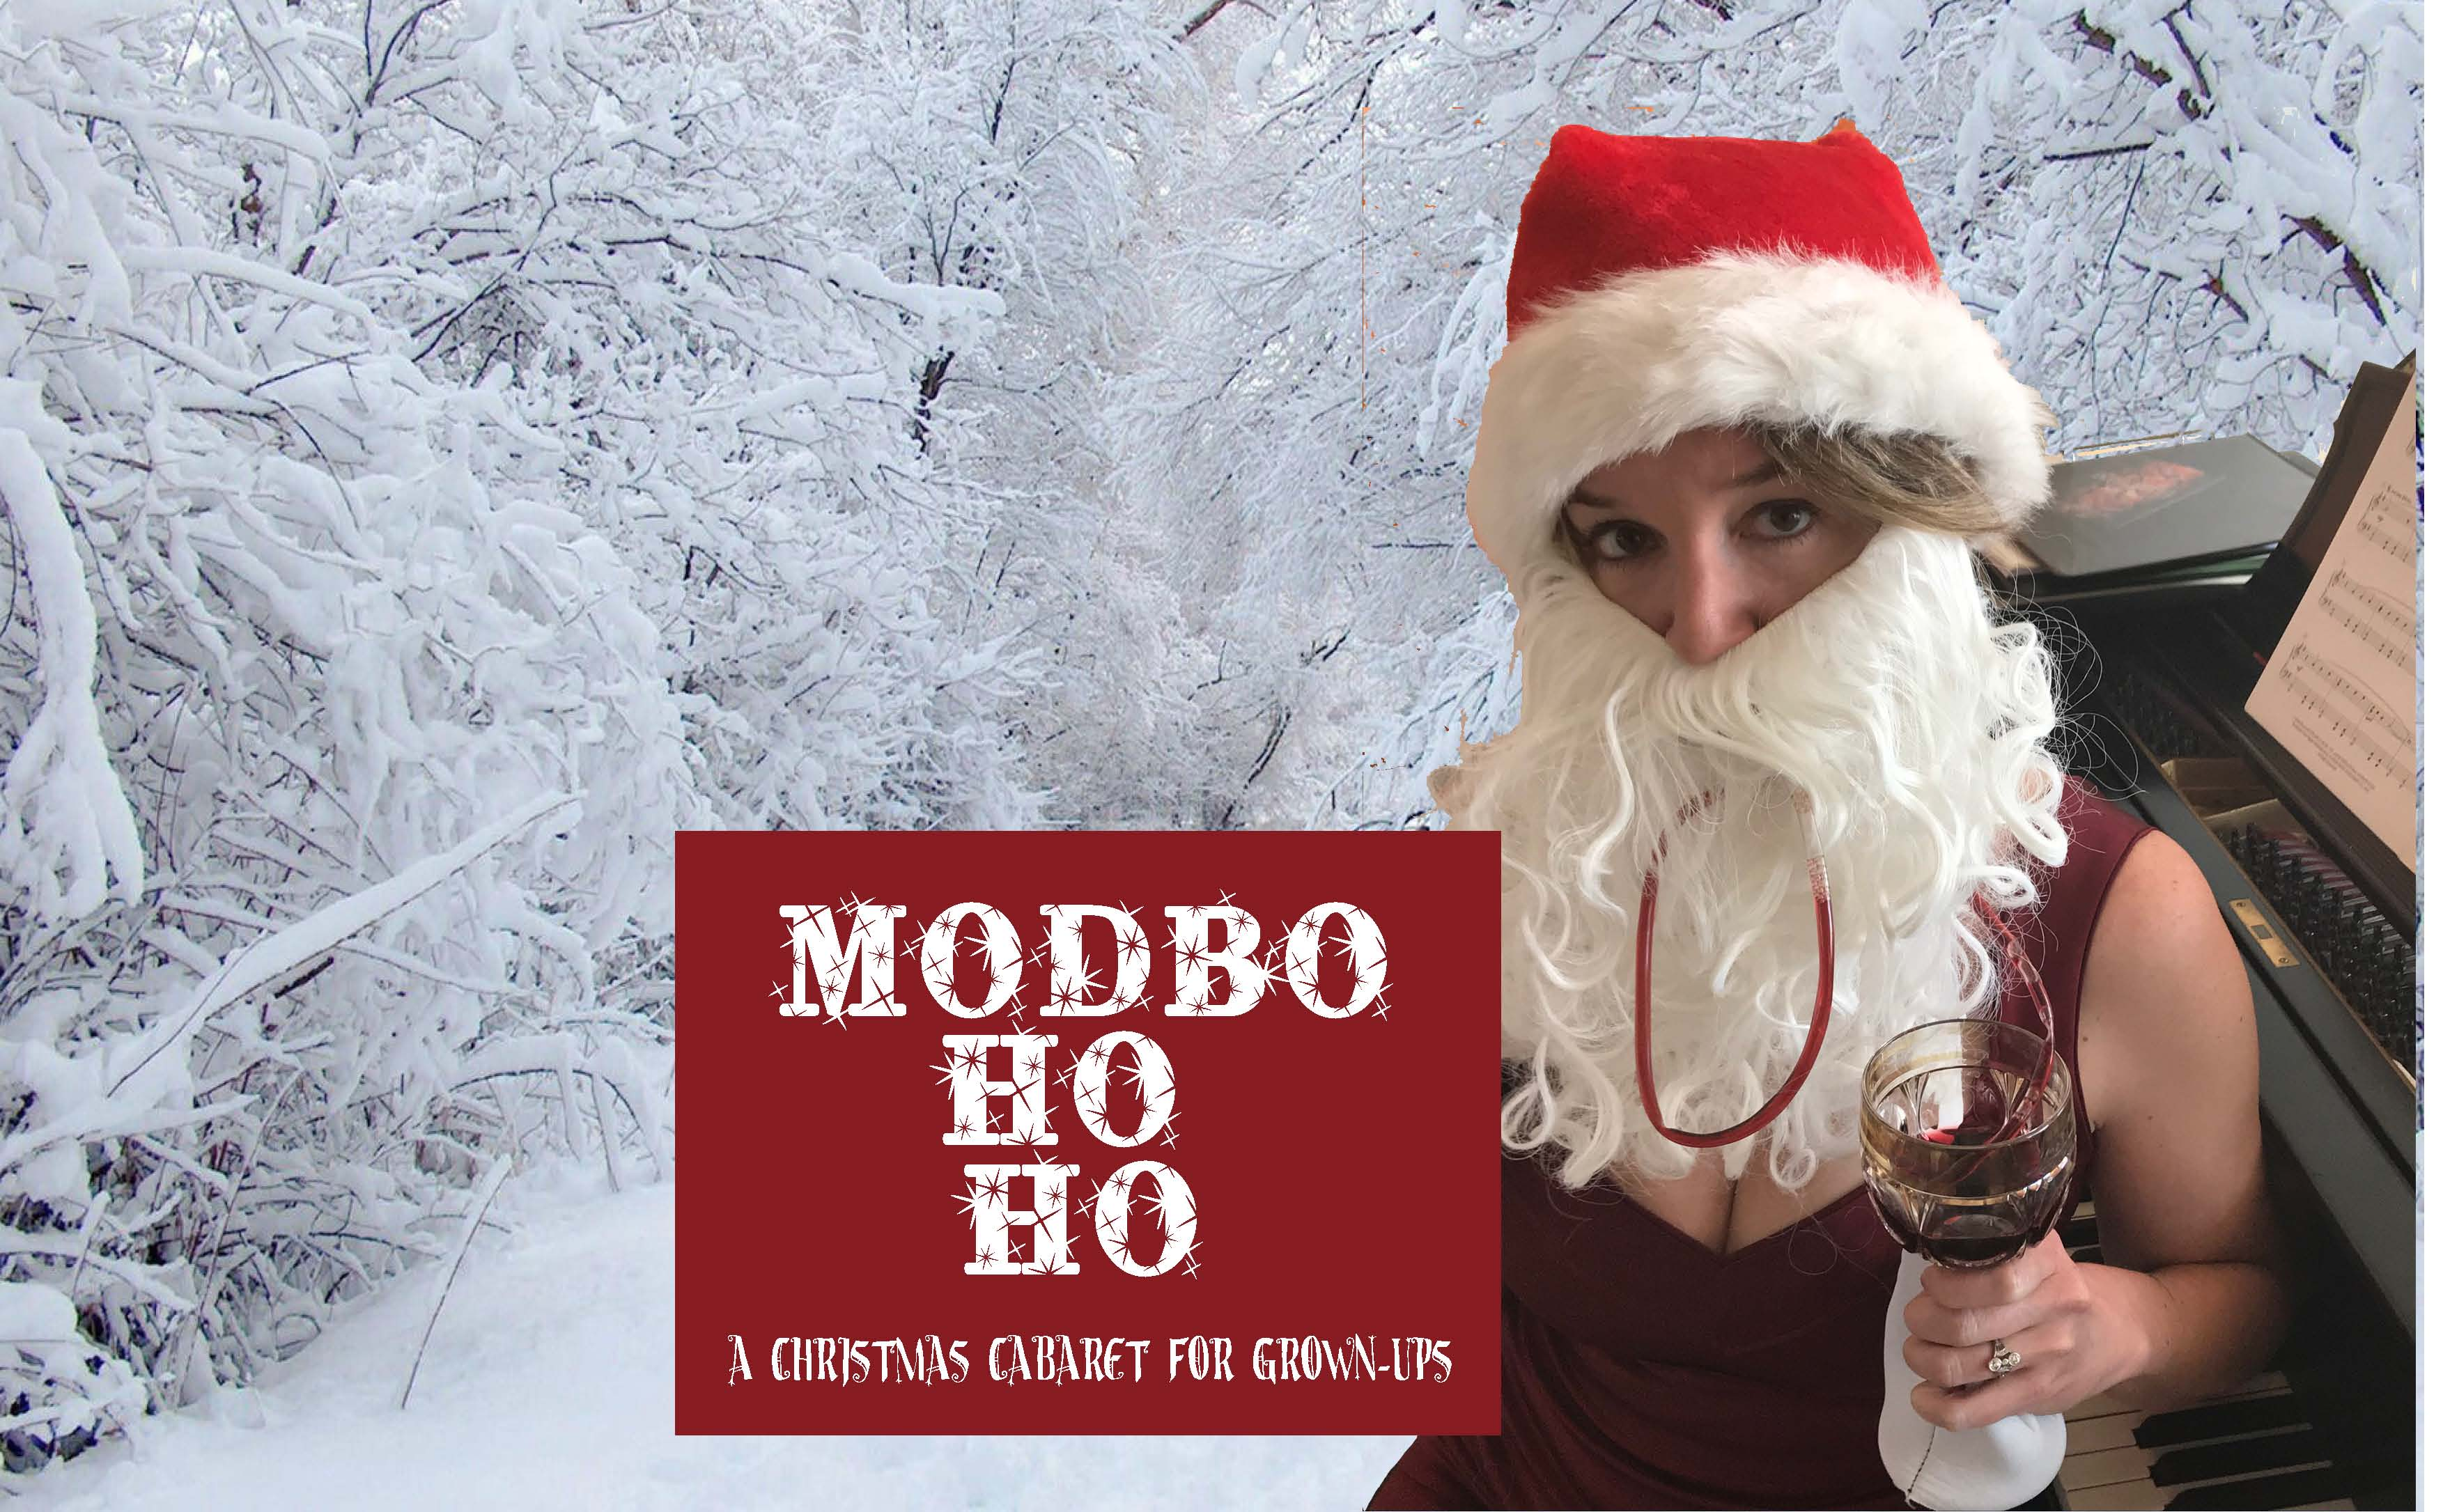 The Modbo Ho Ho 2017: A Christmas Cabaret for Grown-Ups